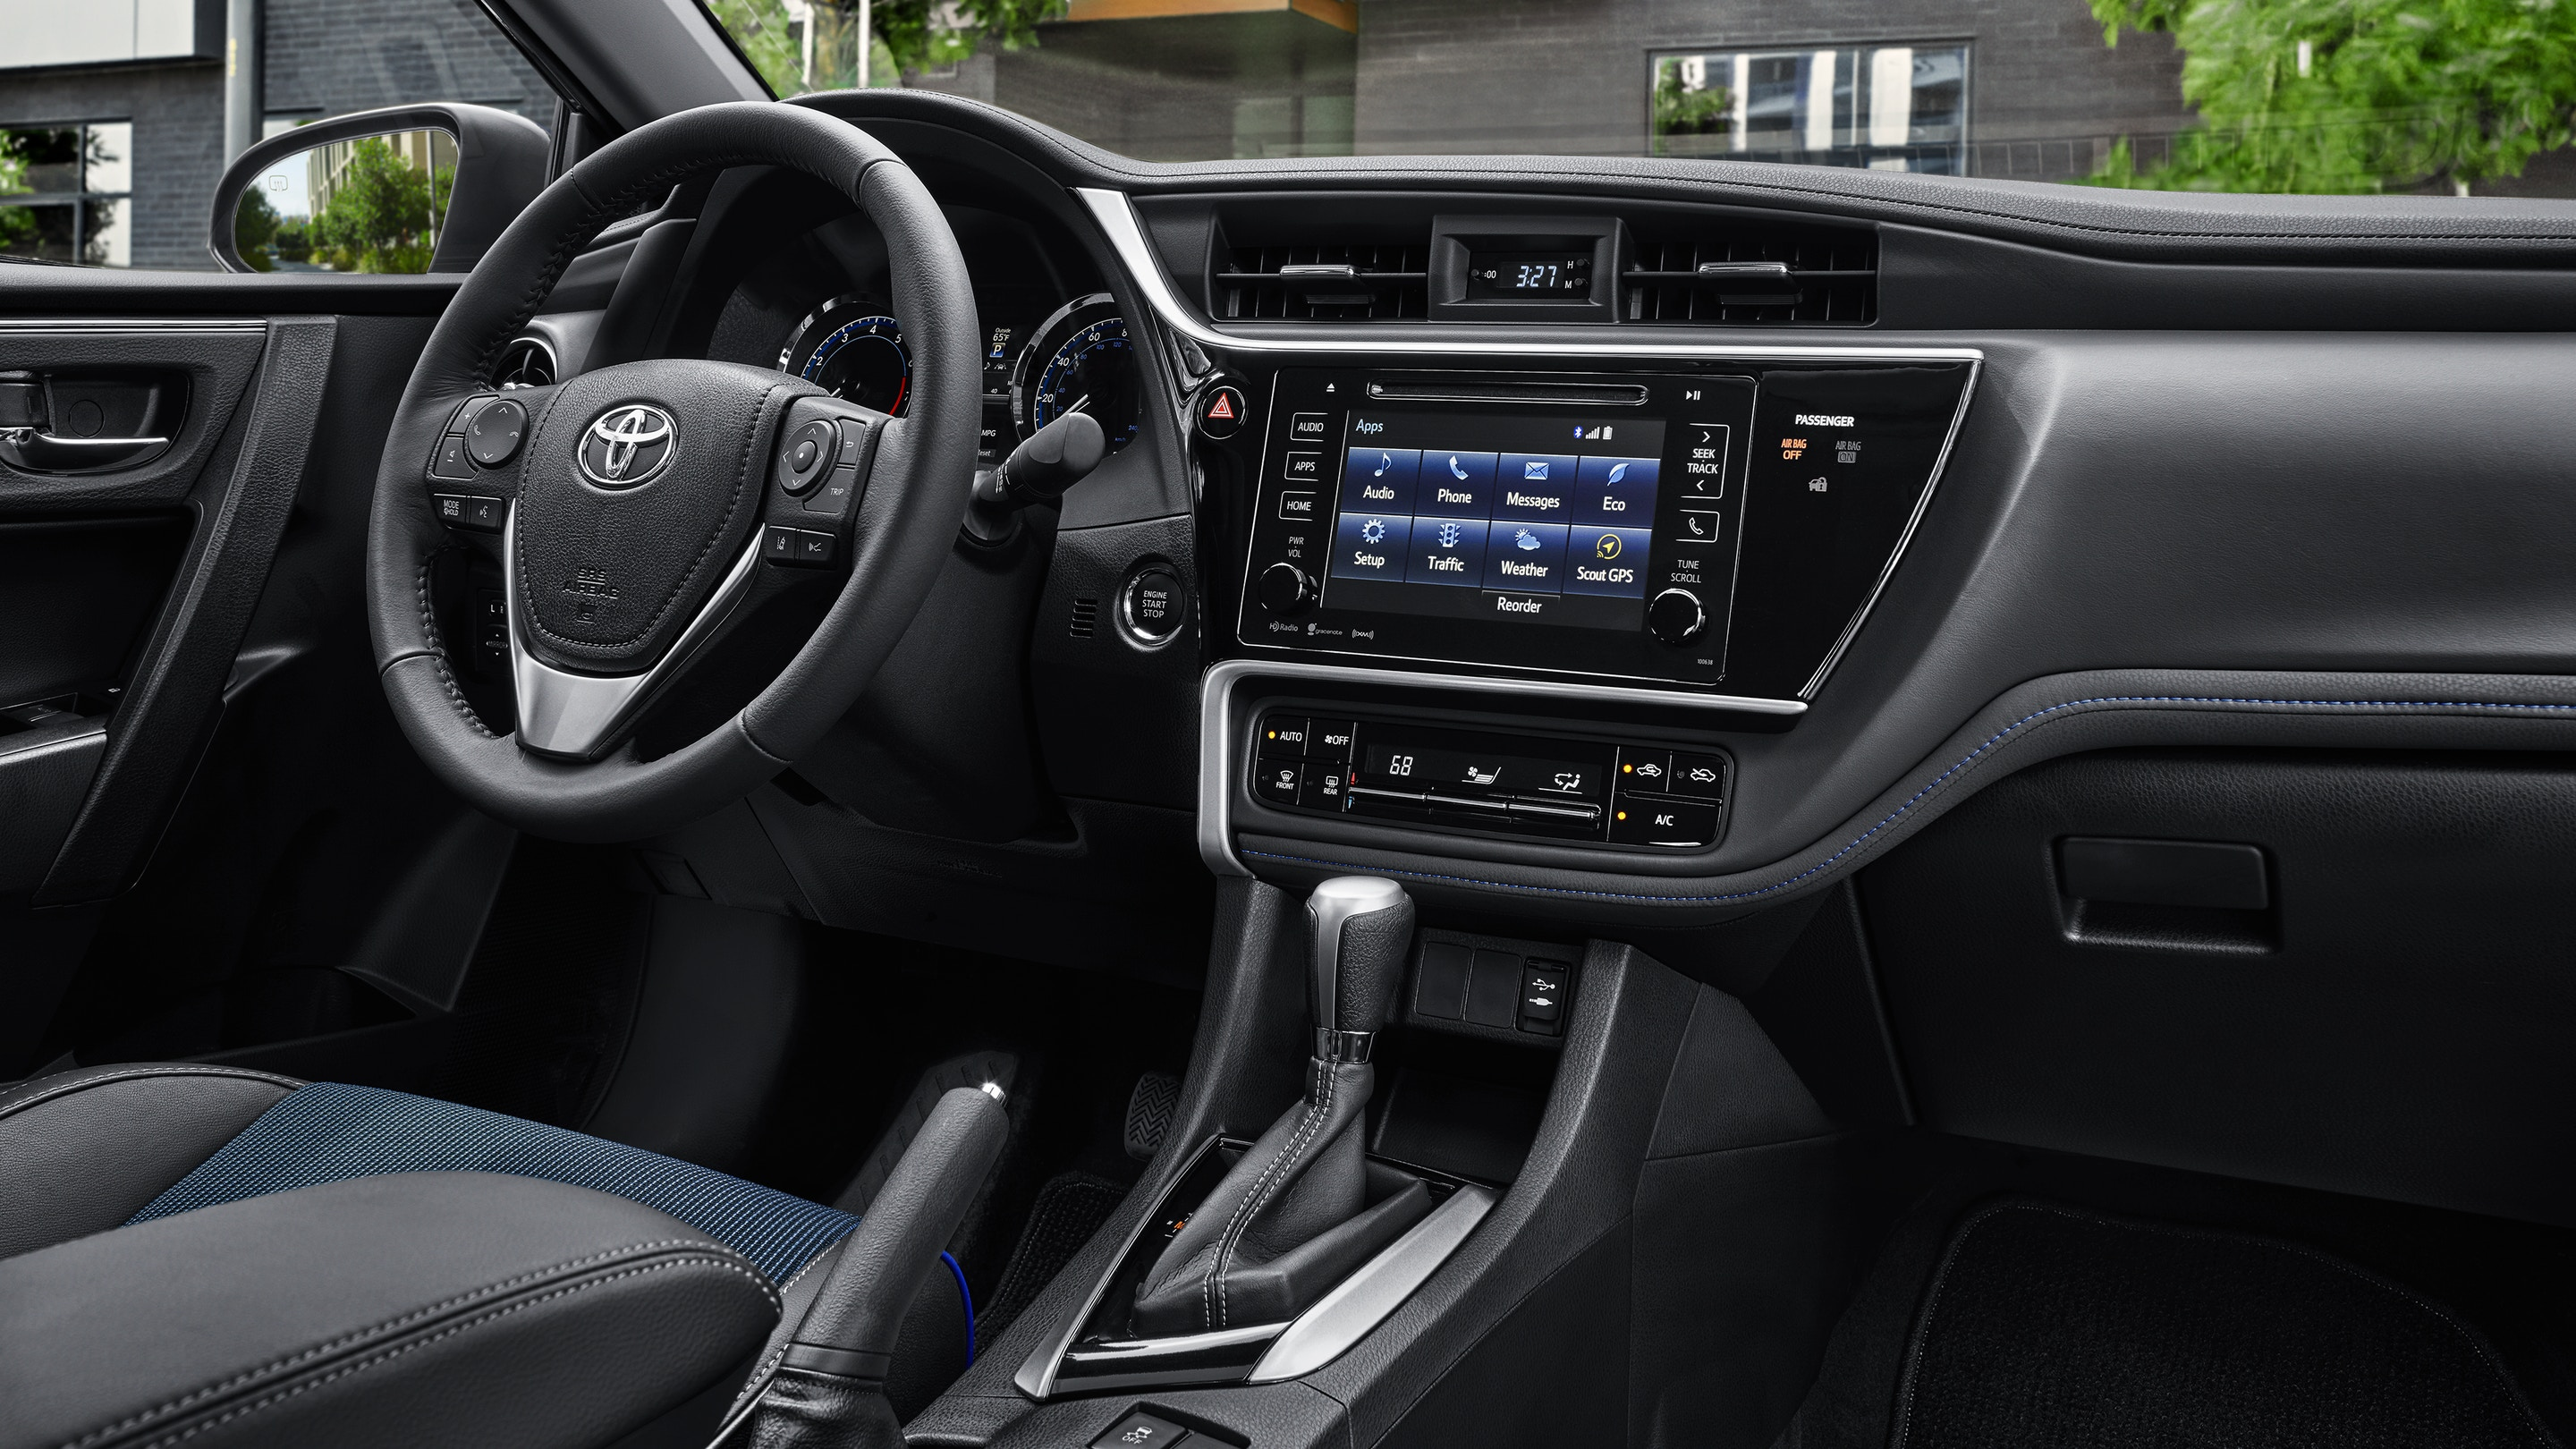 Interior of the 2019 Toyota Corolla